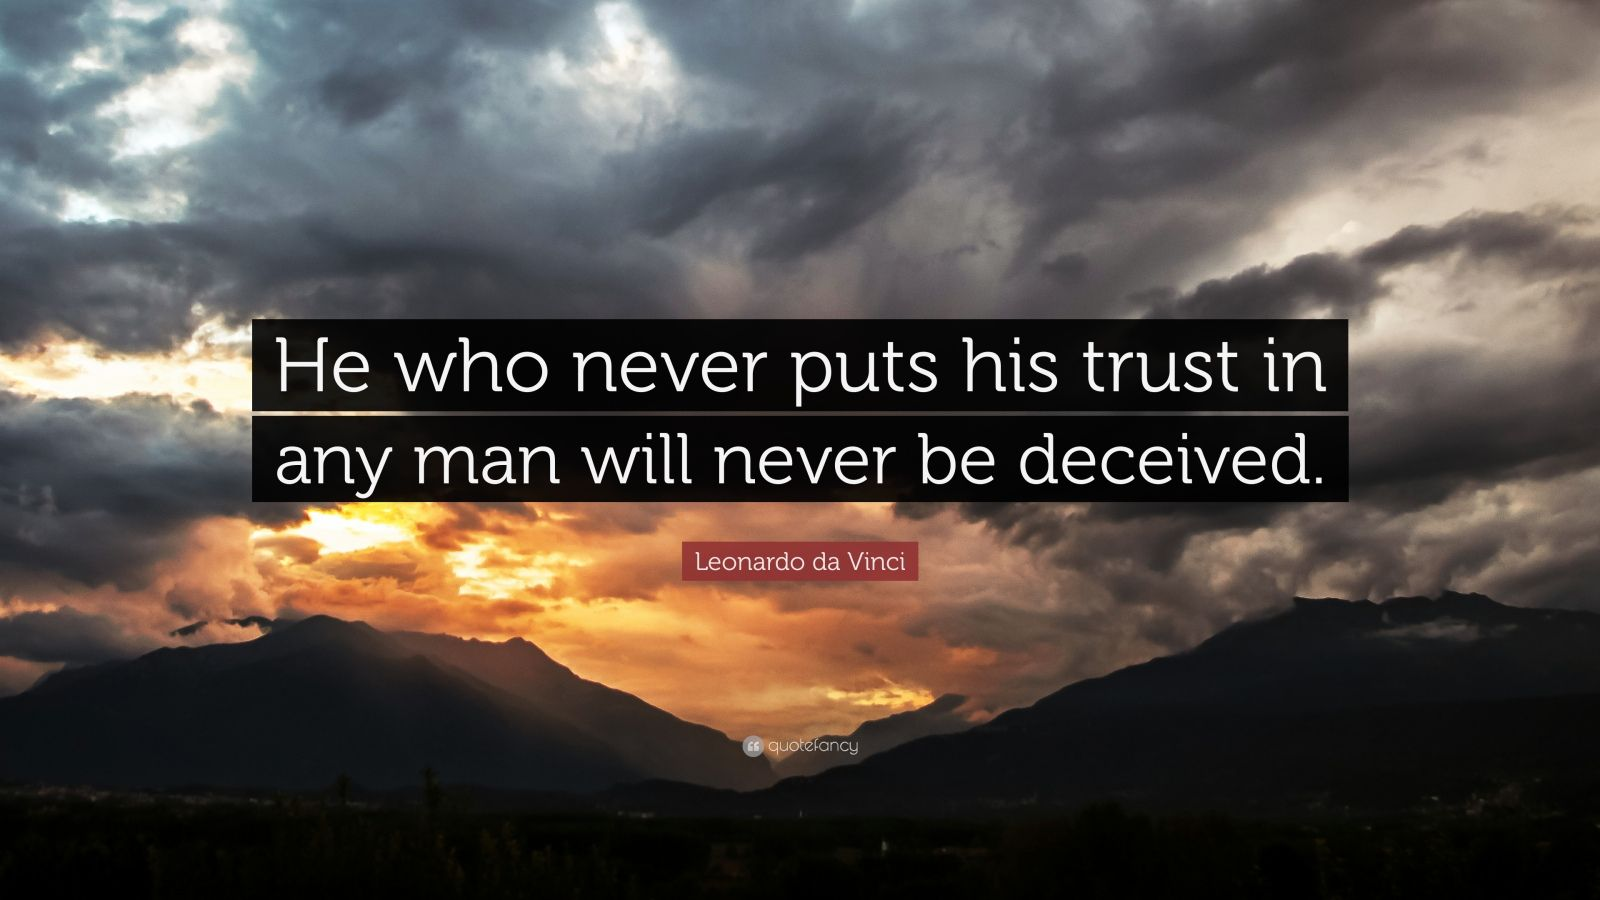 """Leonardo da Vinci Quote: """"He who never puts his trust in any man will never be deceived."""""""